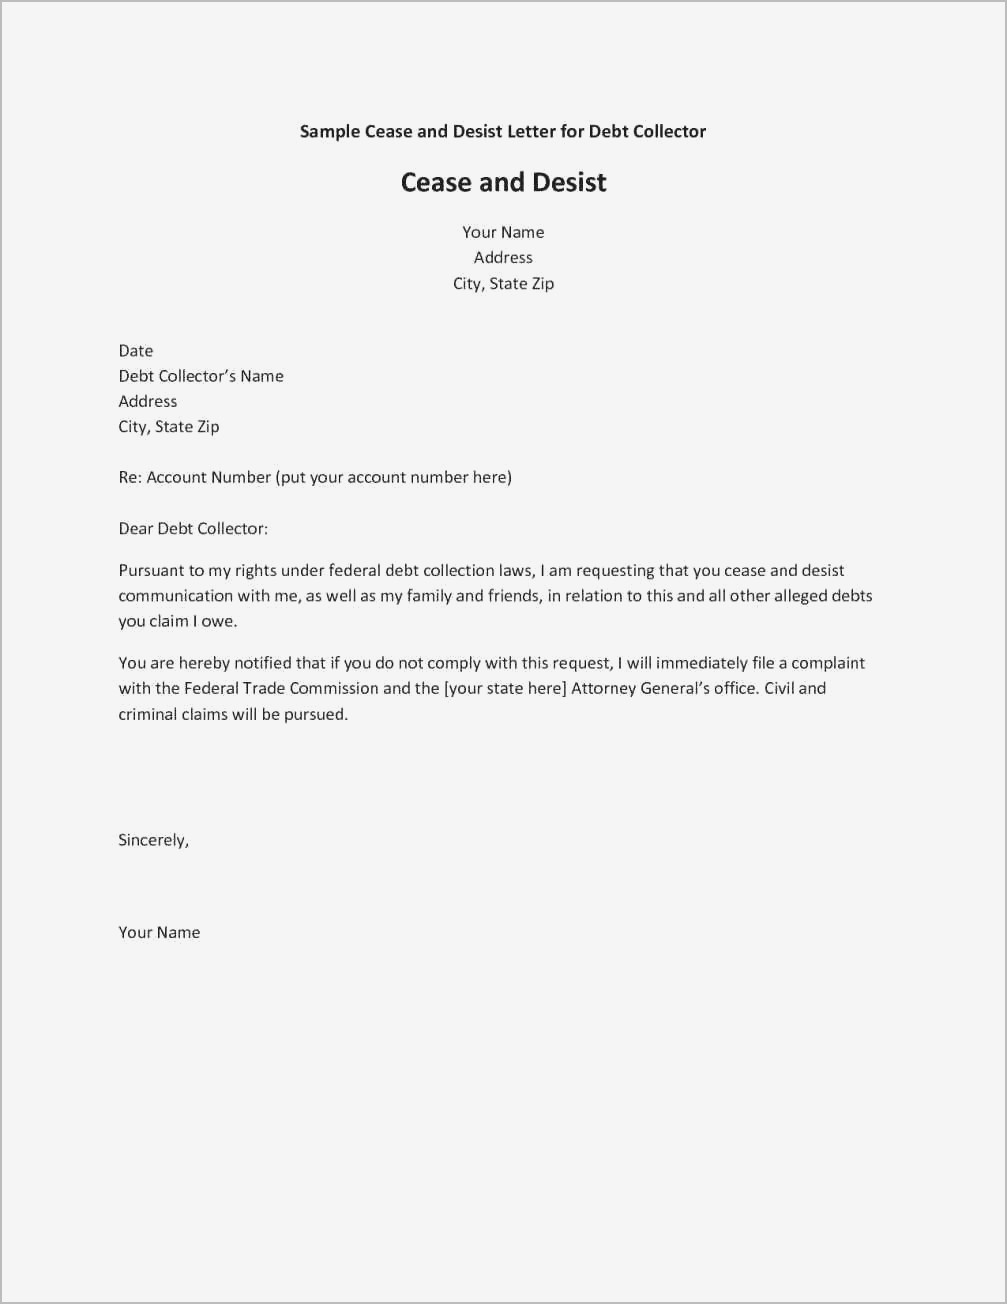 Cease and Desist Letter California Template - Inspirational Cease and Desist Letter Example Your Template